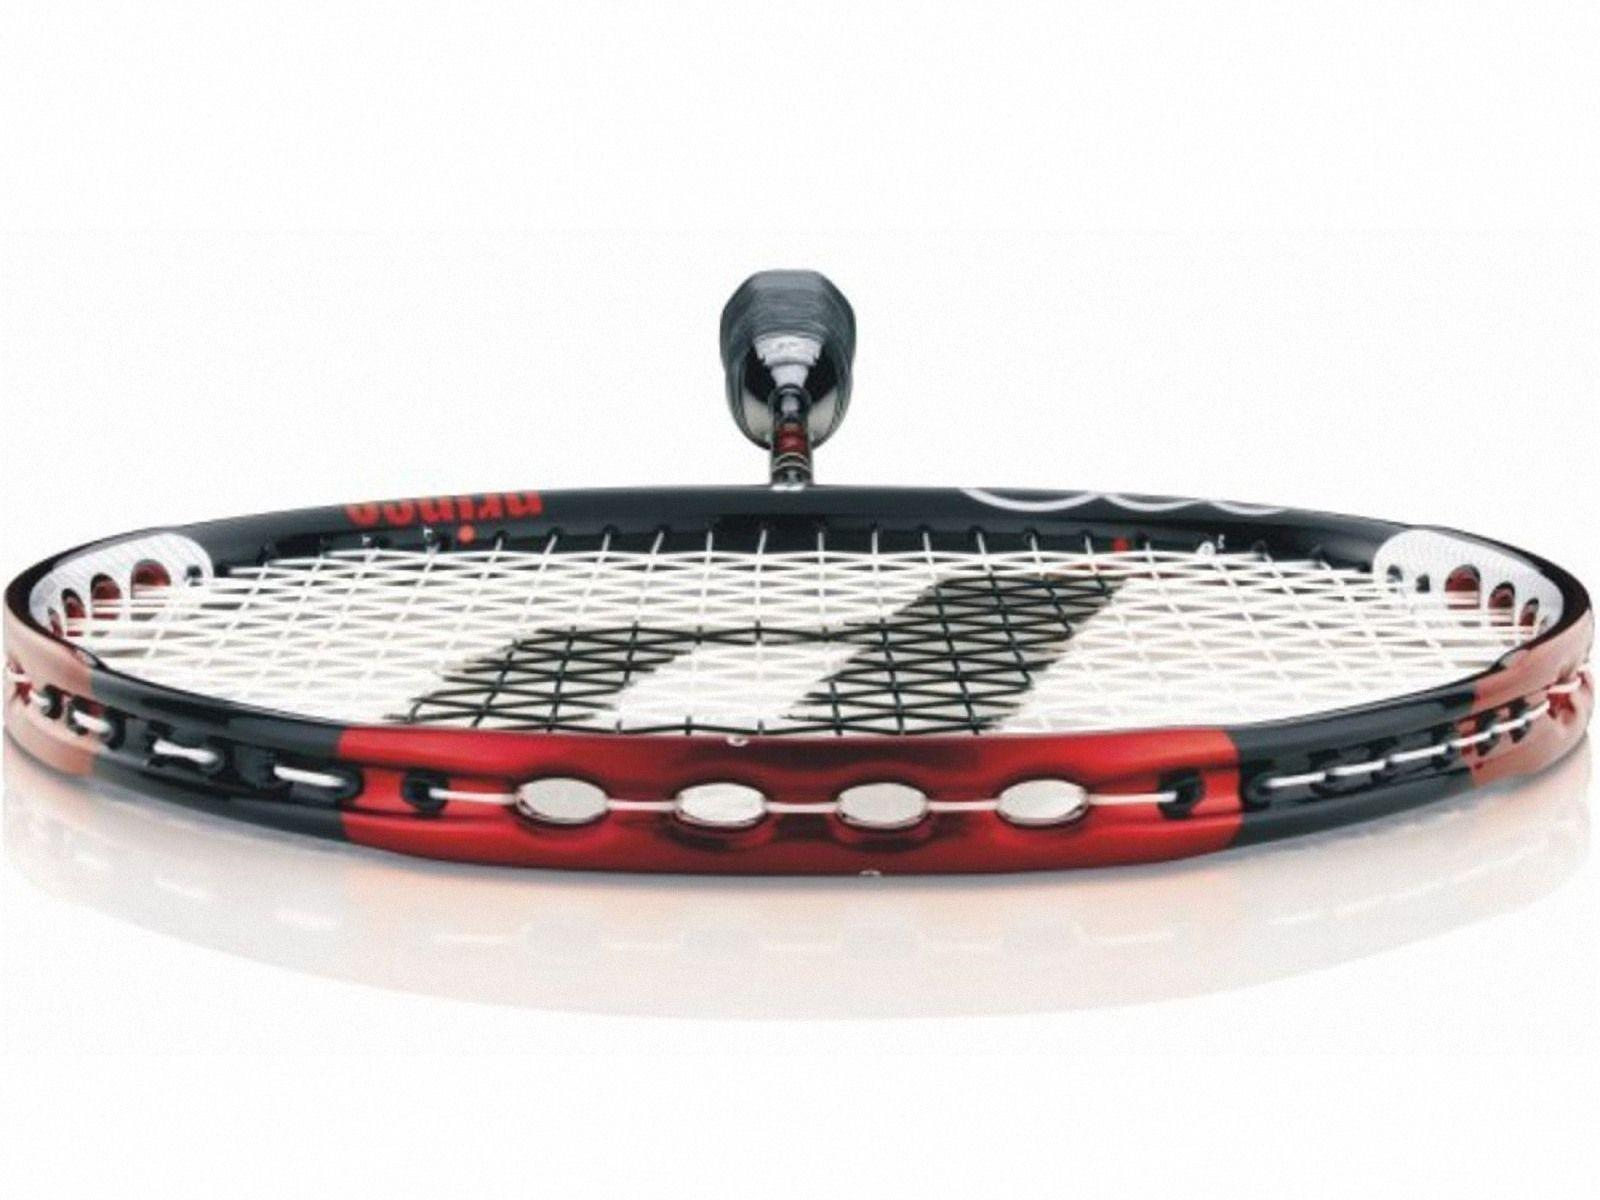 Prince Red Badminton Racket Wallpapers,Badminton Wallpapers ...